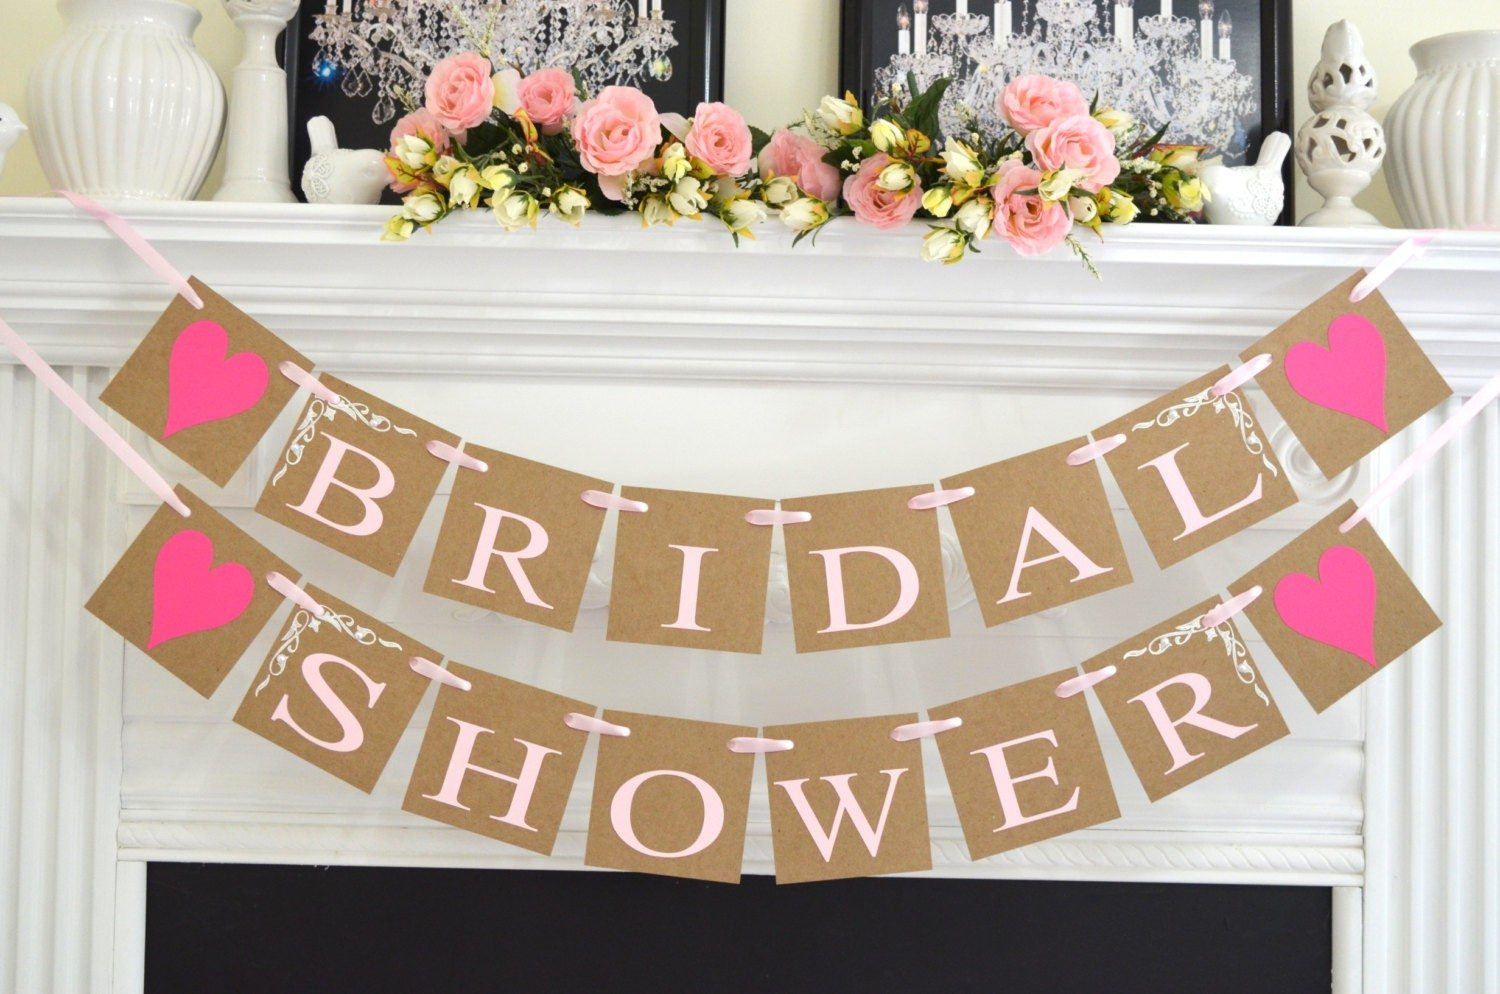 Bridal shower ideas 10 unique ideas for a party - Wedding bridal shower ...